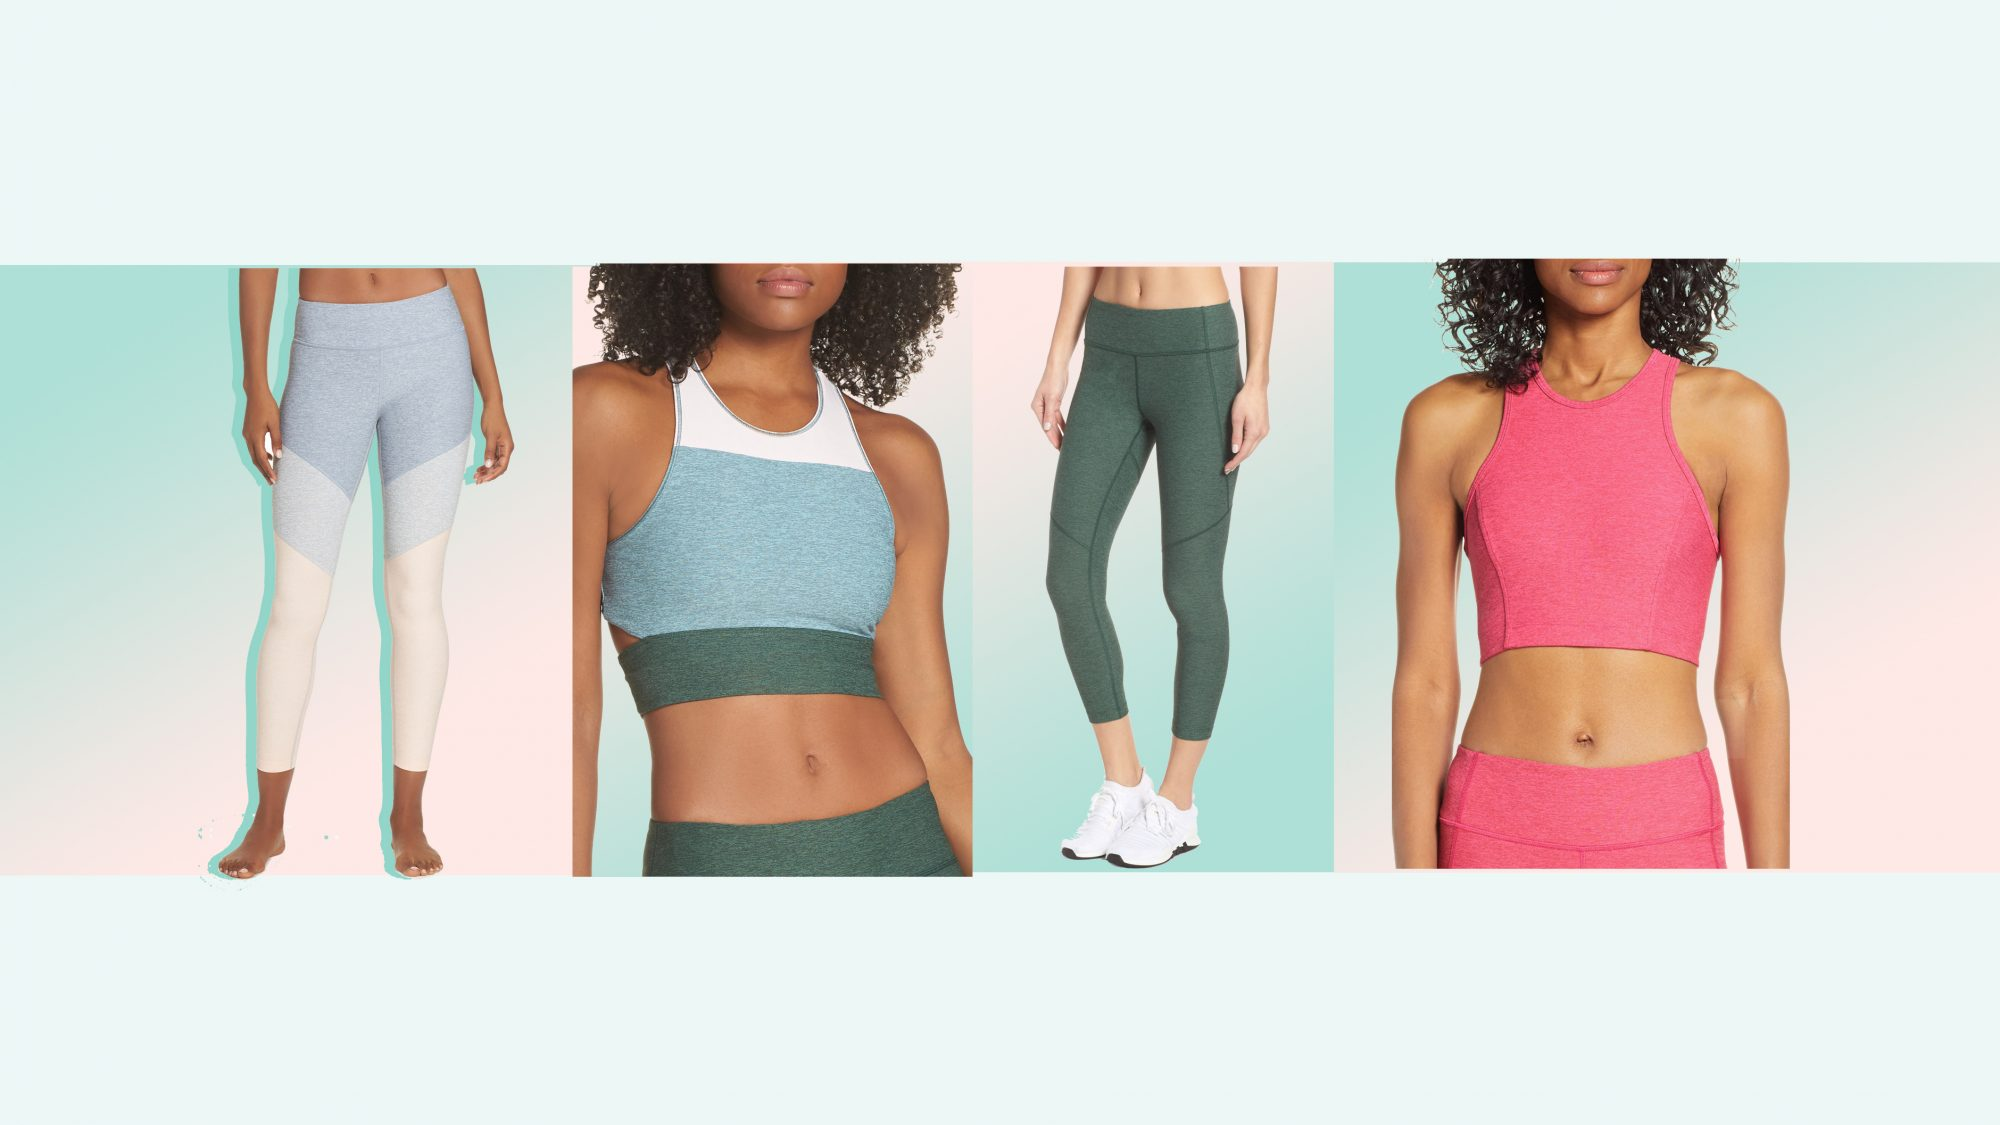 nordstrom-outdoor-voices nordstrom outdoor-voices  sale fitness woman health wellbeing fashion style exercise